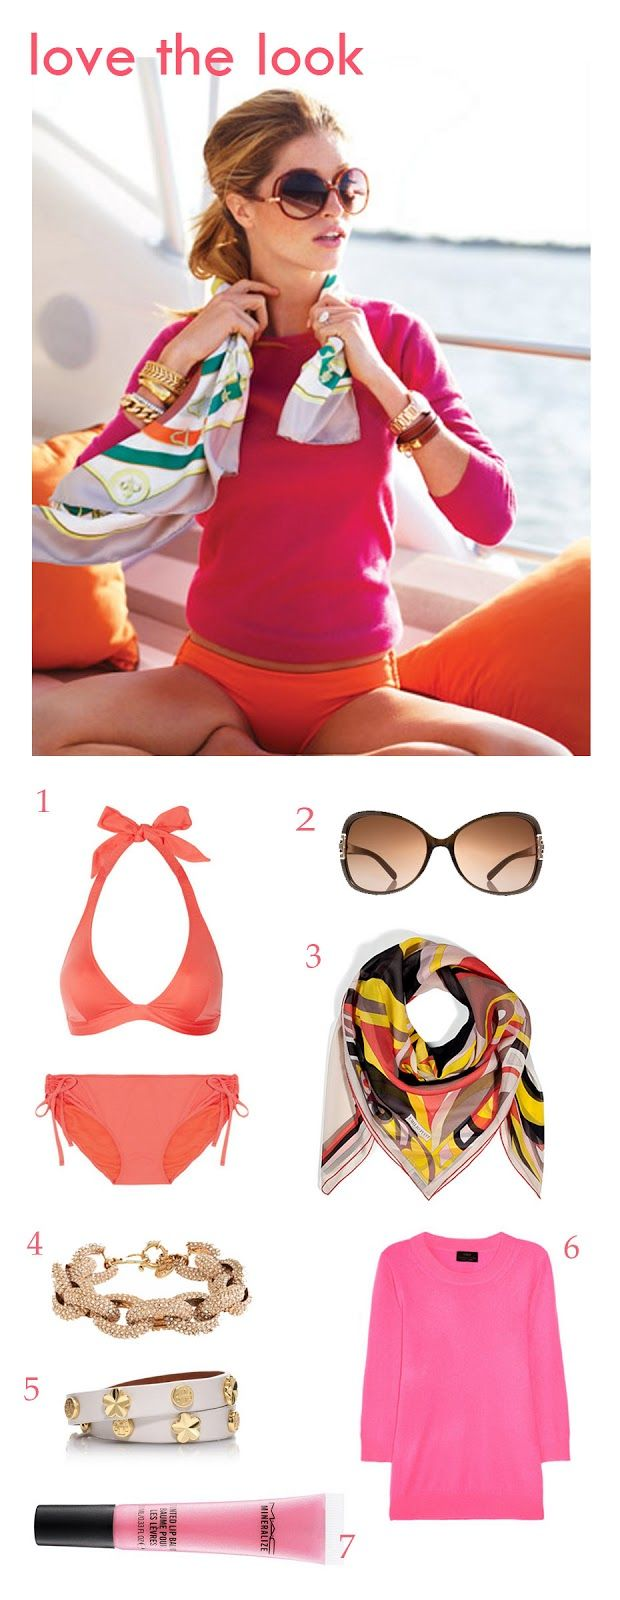 SHELTER: Love the Look bikini, sweater, scarf